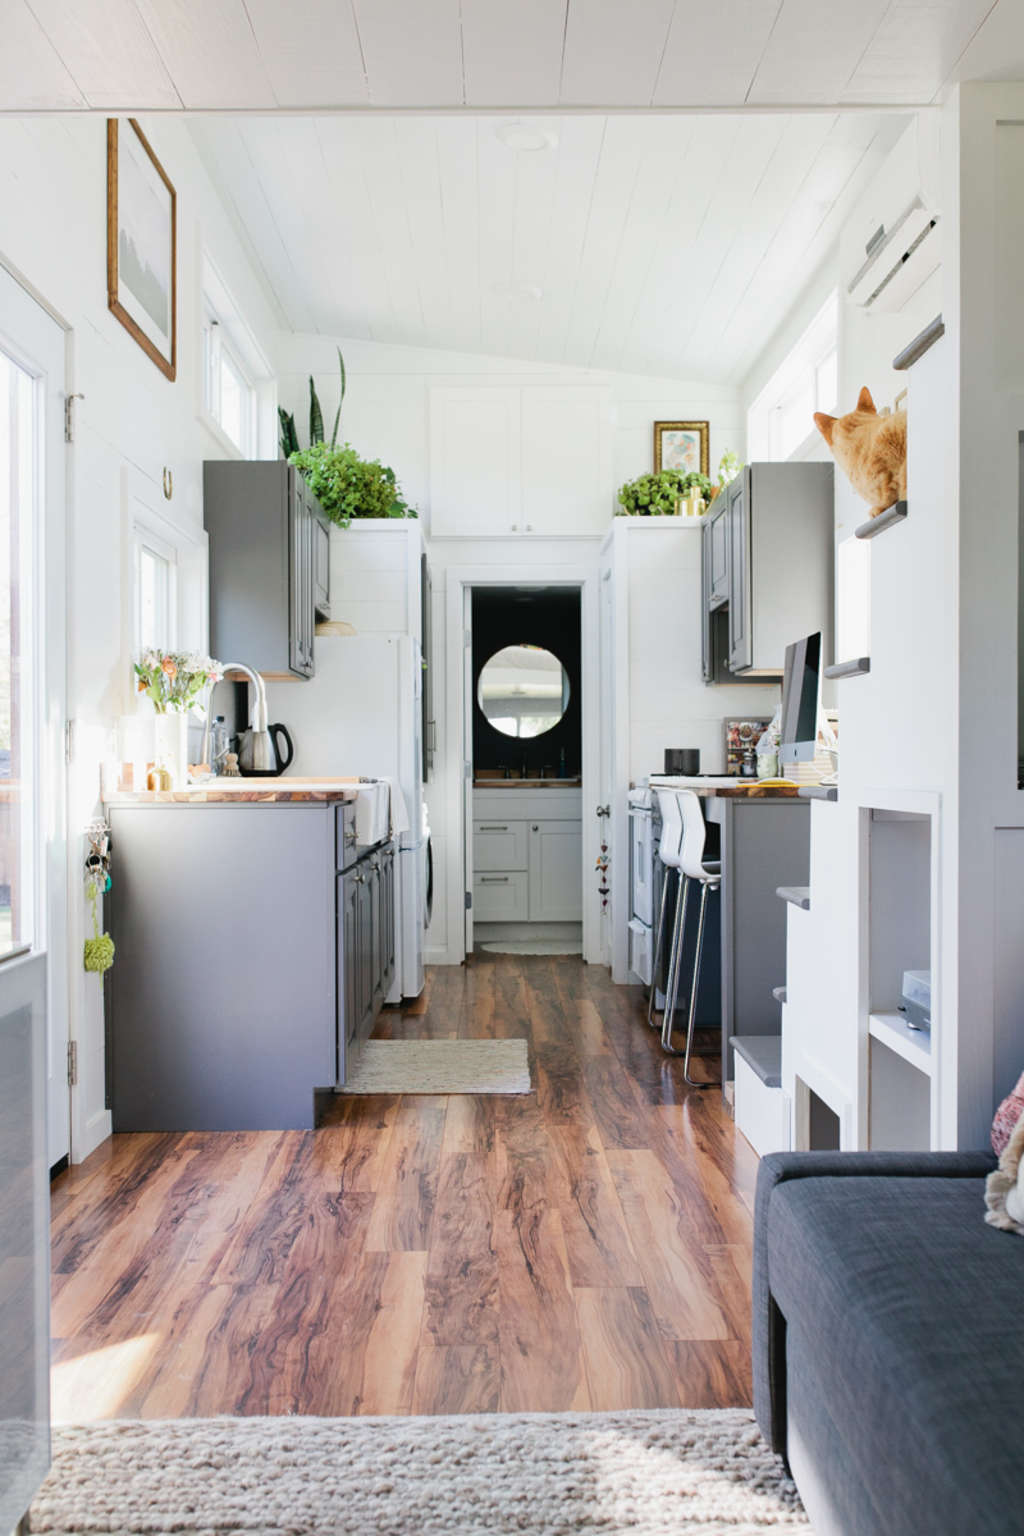 Smart & Stylish Use of Space in this 312 Square Foot Home